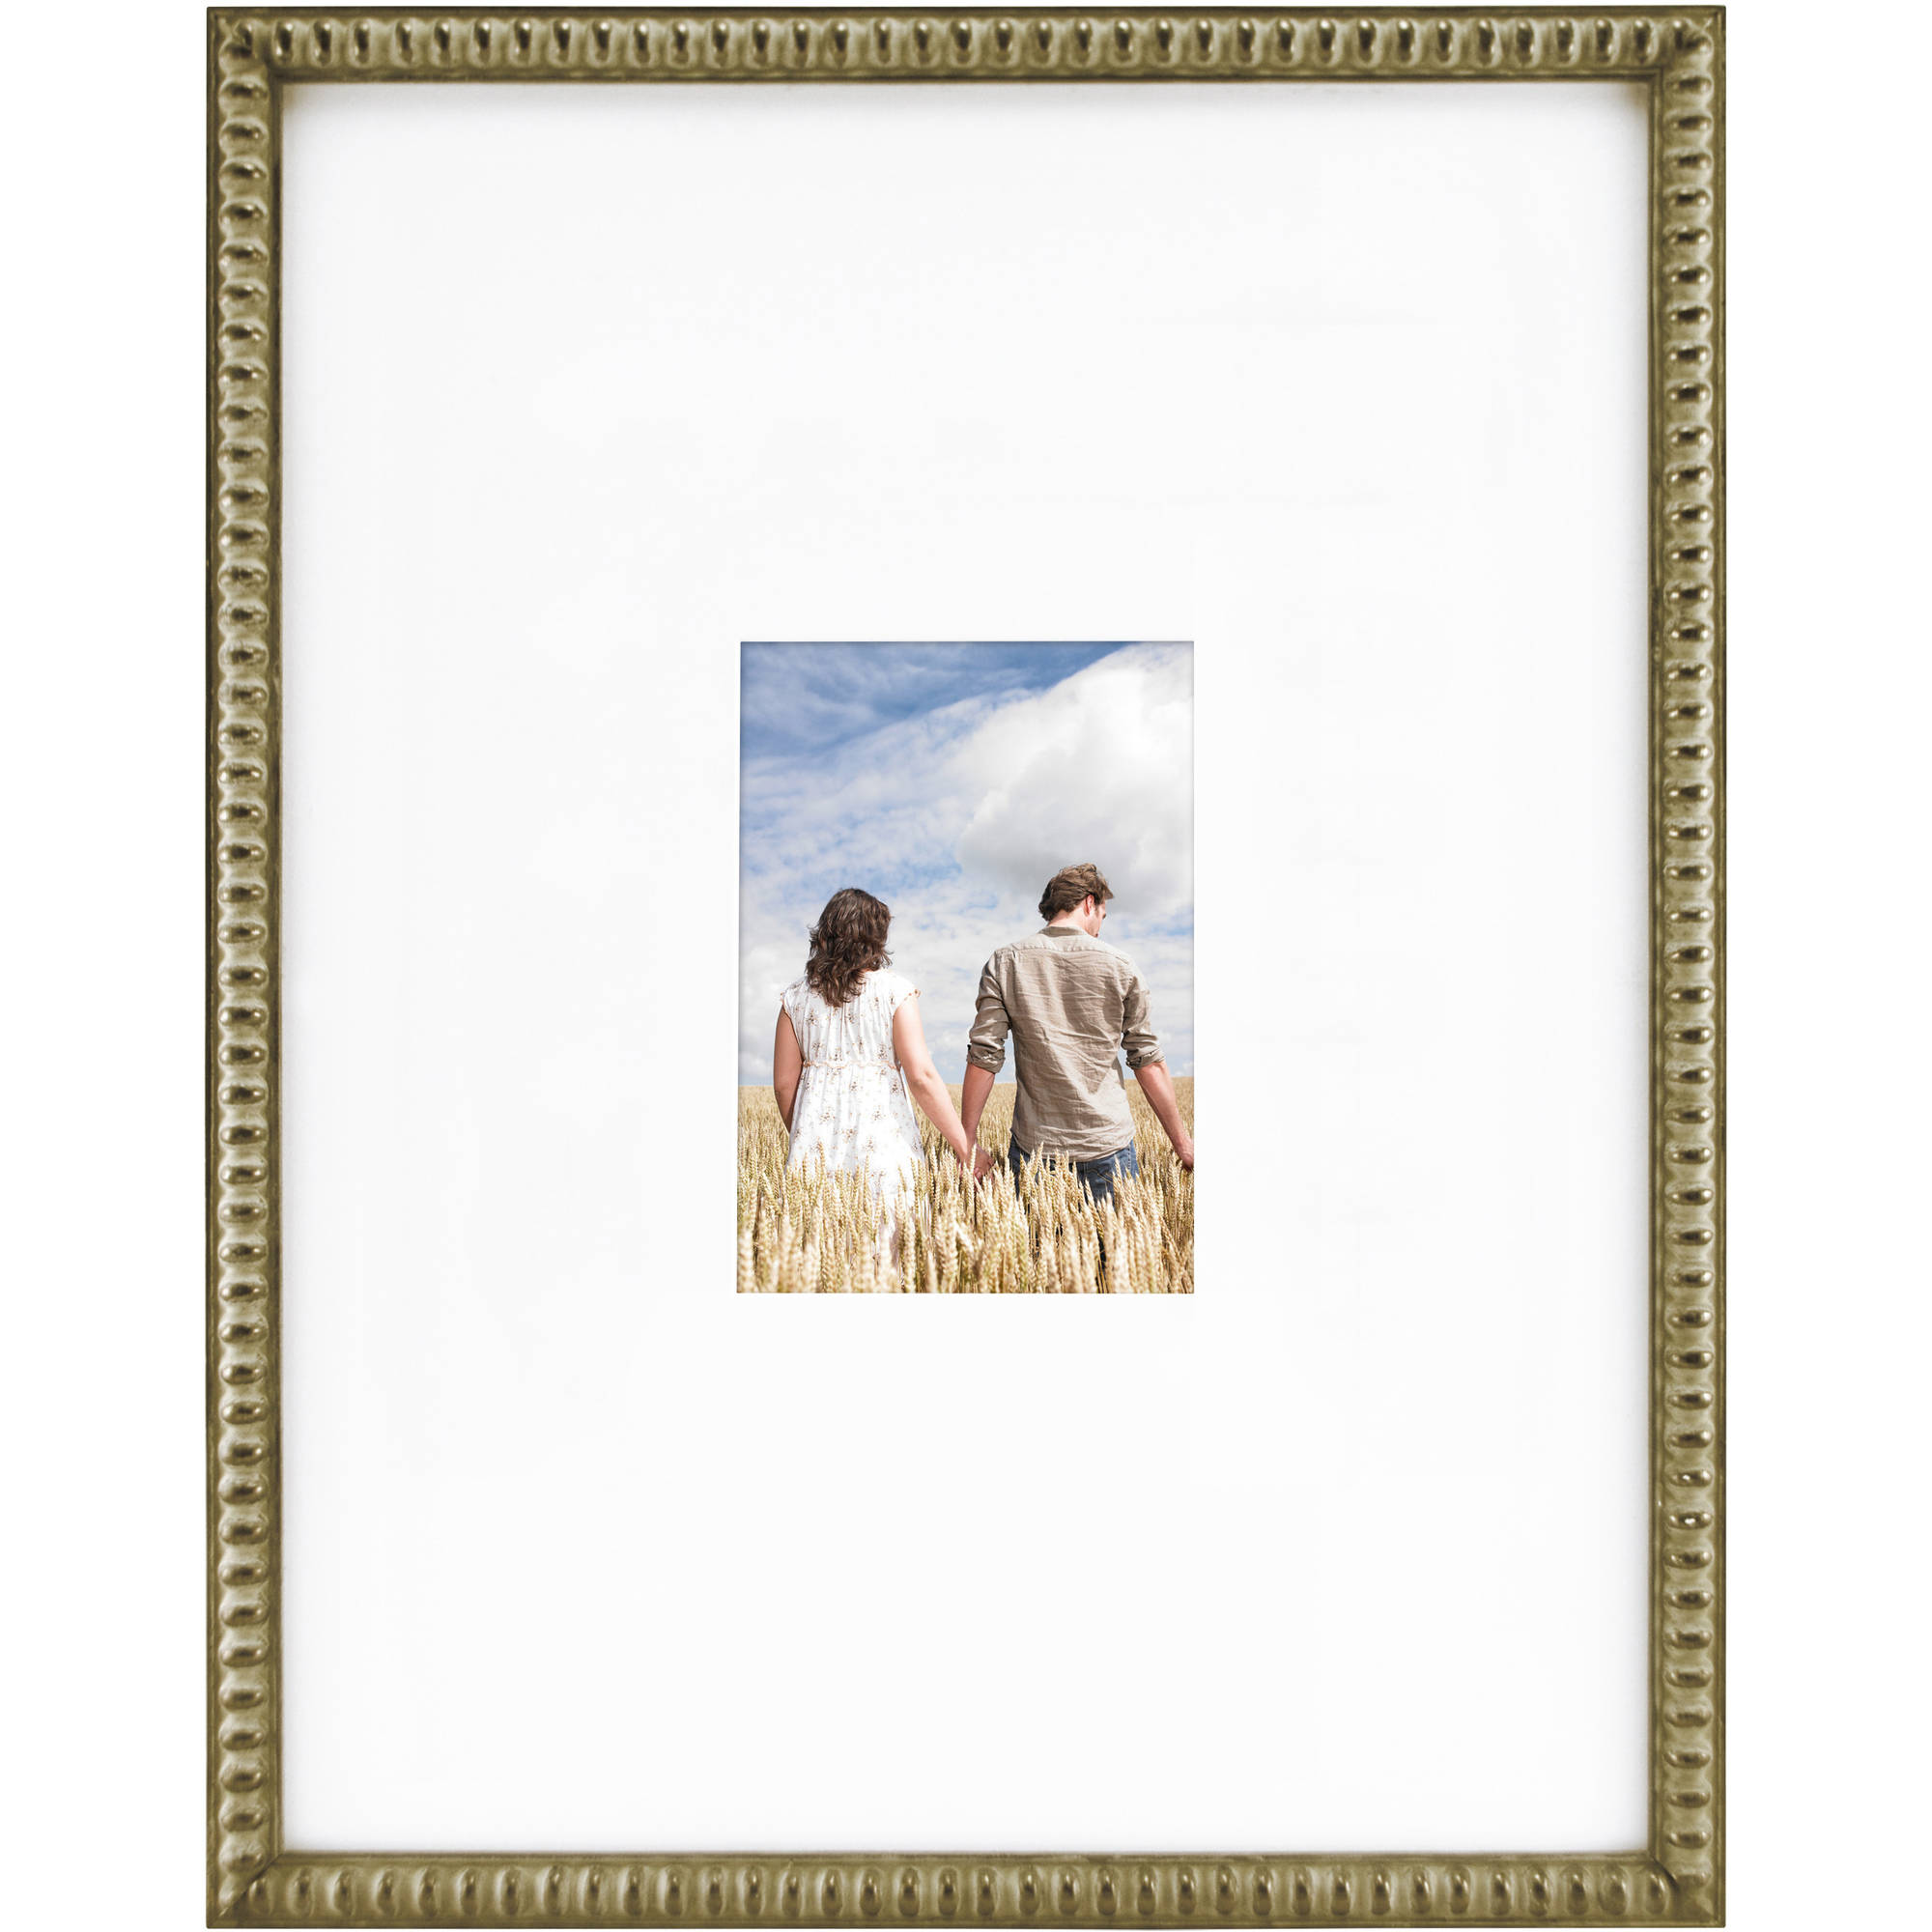 "Mainstays Signature Frame, 14"" x 18"", Matted to Fit 5"" x 7"" Pictures, Available in Multiple Colors"